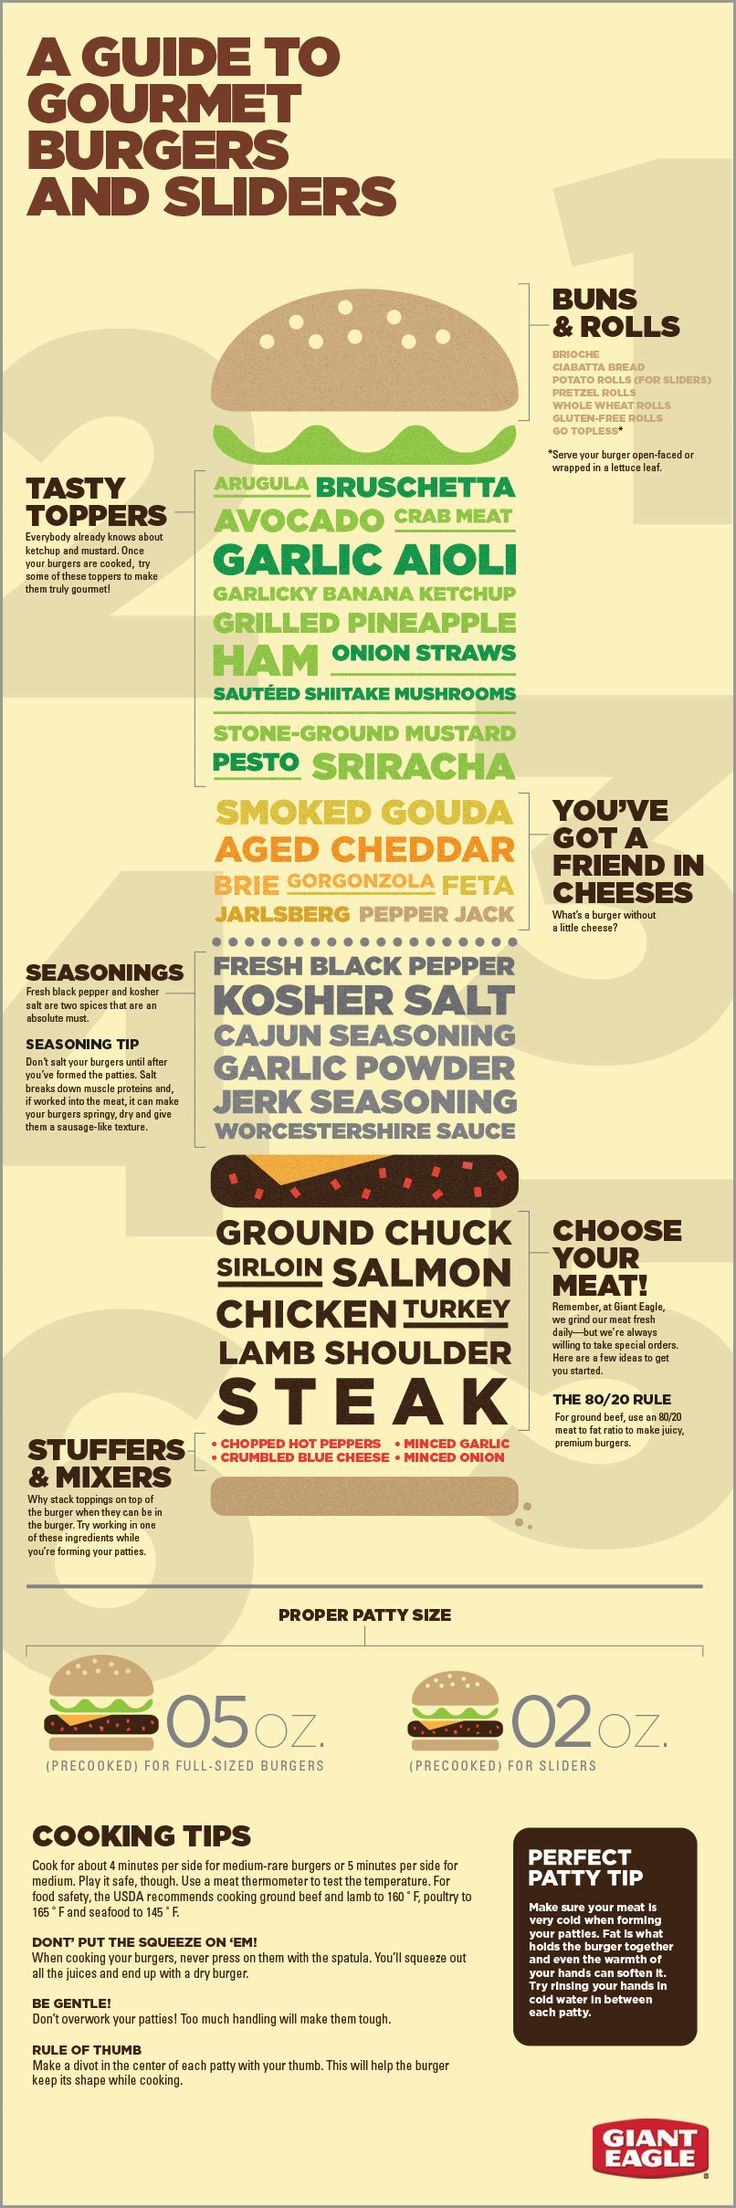 A Guide To Gourmet Burgers And Sliders #grilling #burgers                                                                                                                                                      More